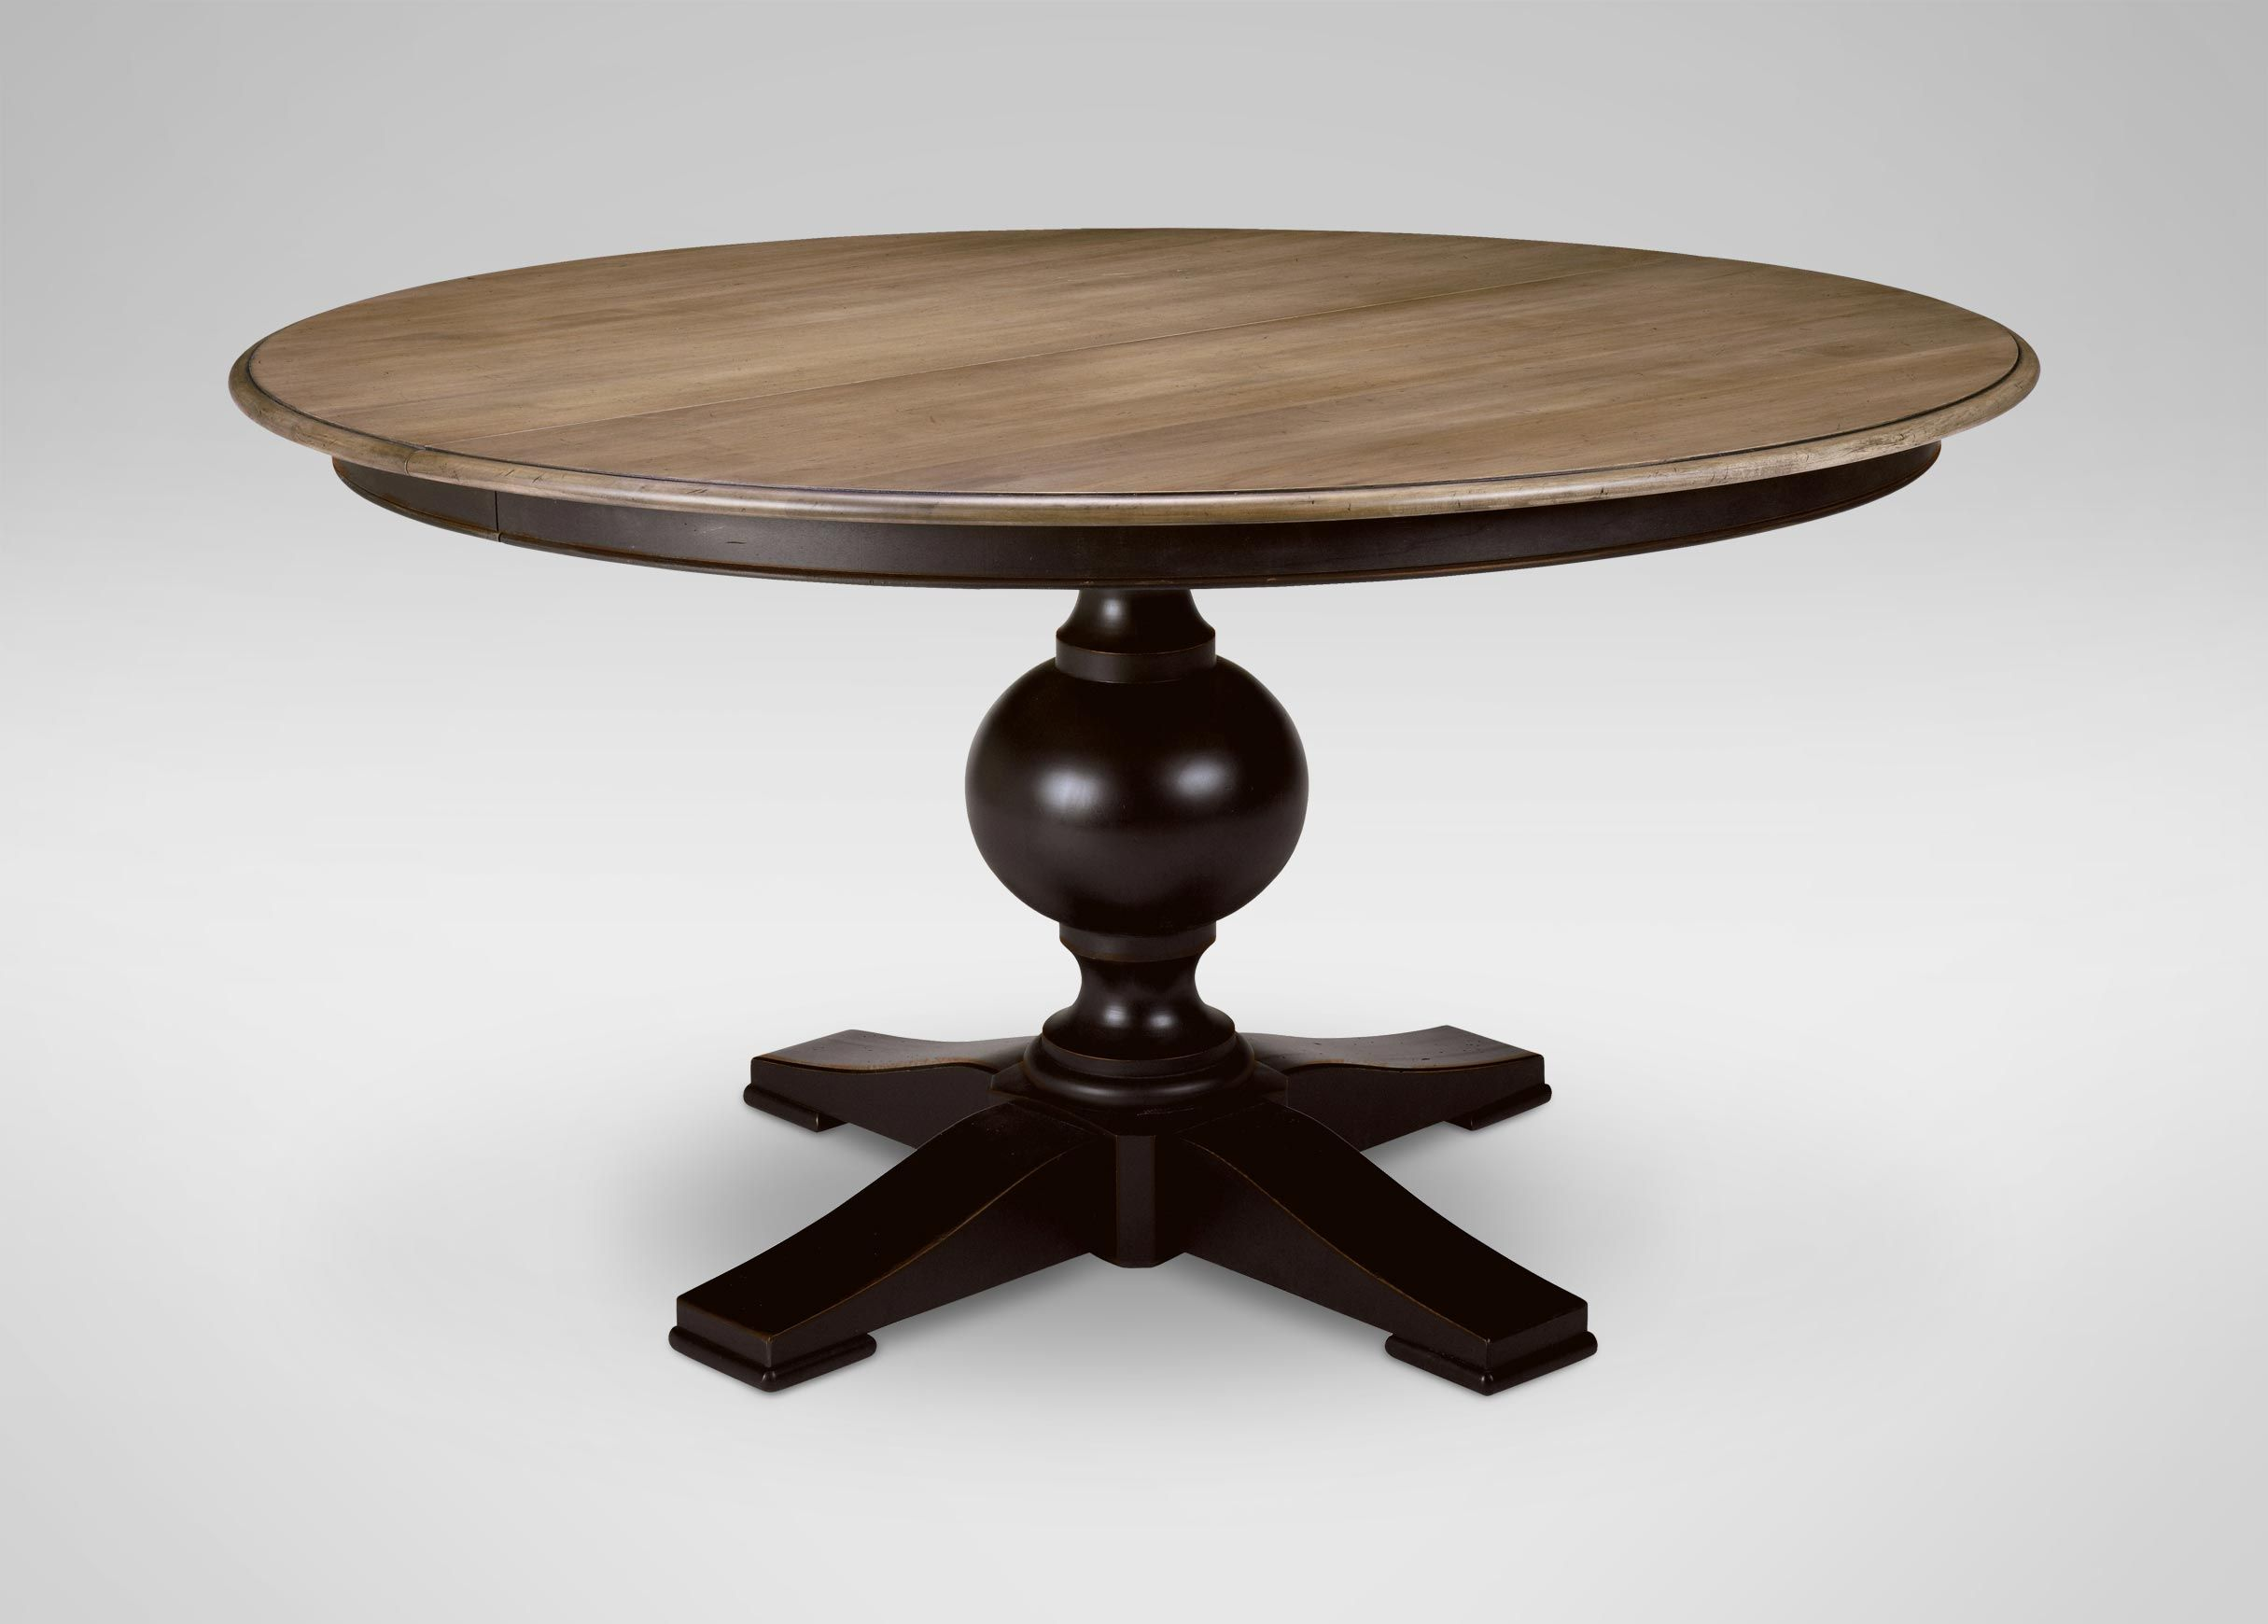 Cooper Round Dining Table Dining Tables Ethan Allen Dining